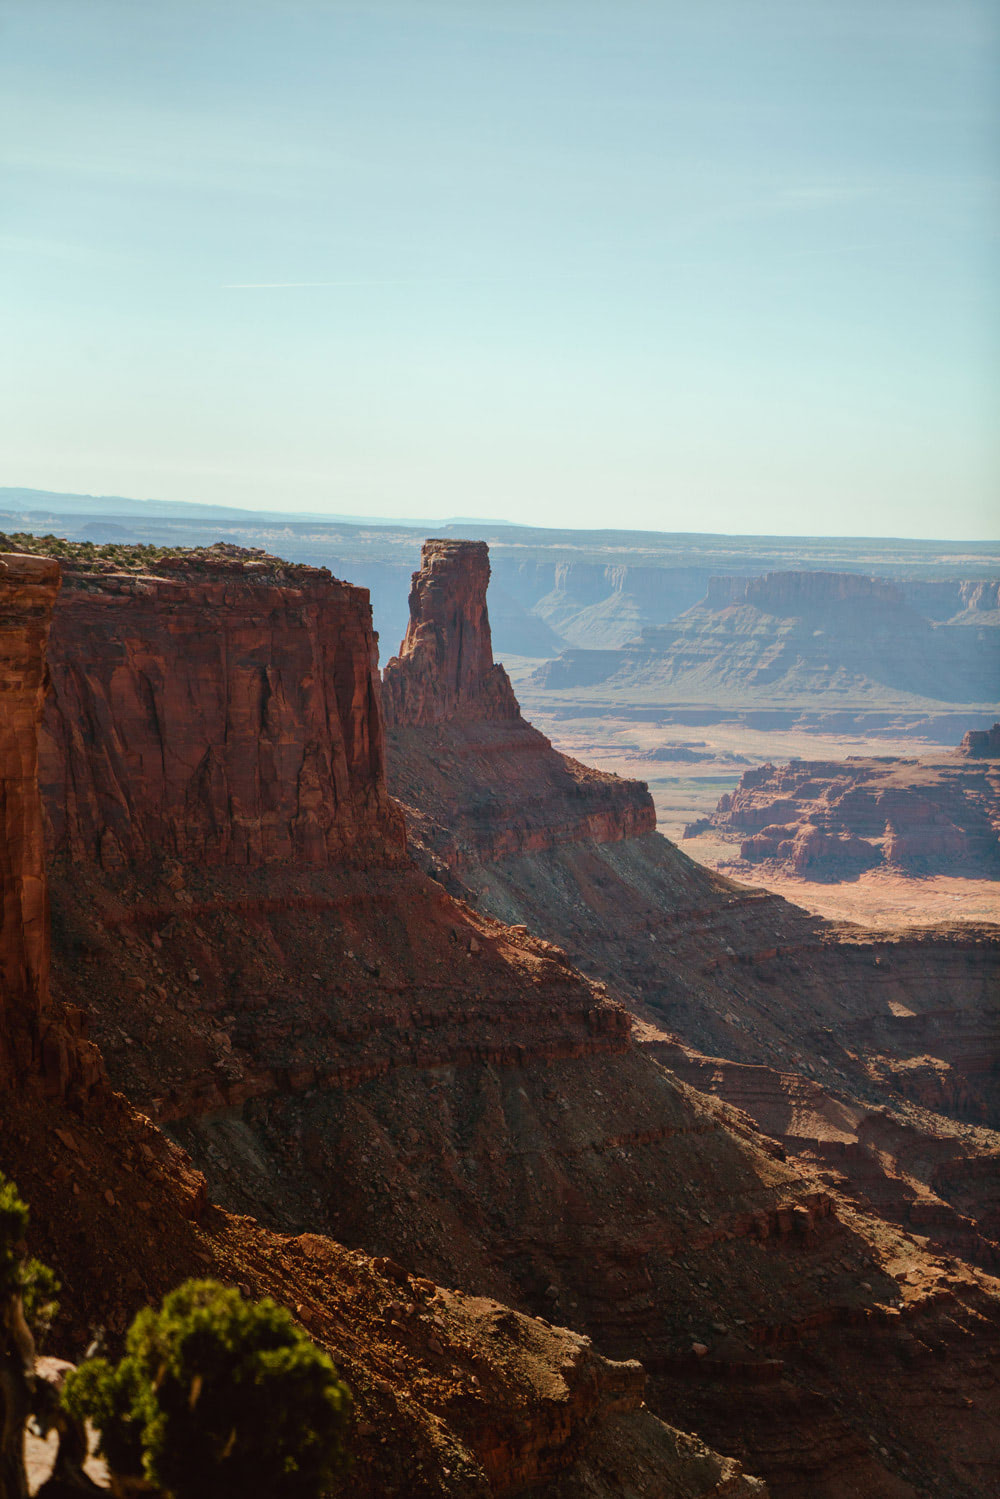 Experiencing Desert Climbing and Biking for the First Time Moab Rock Climbing with Backcountry Dead Horse Point